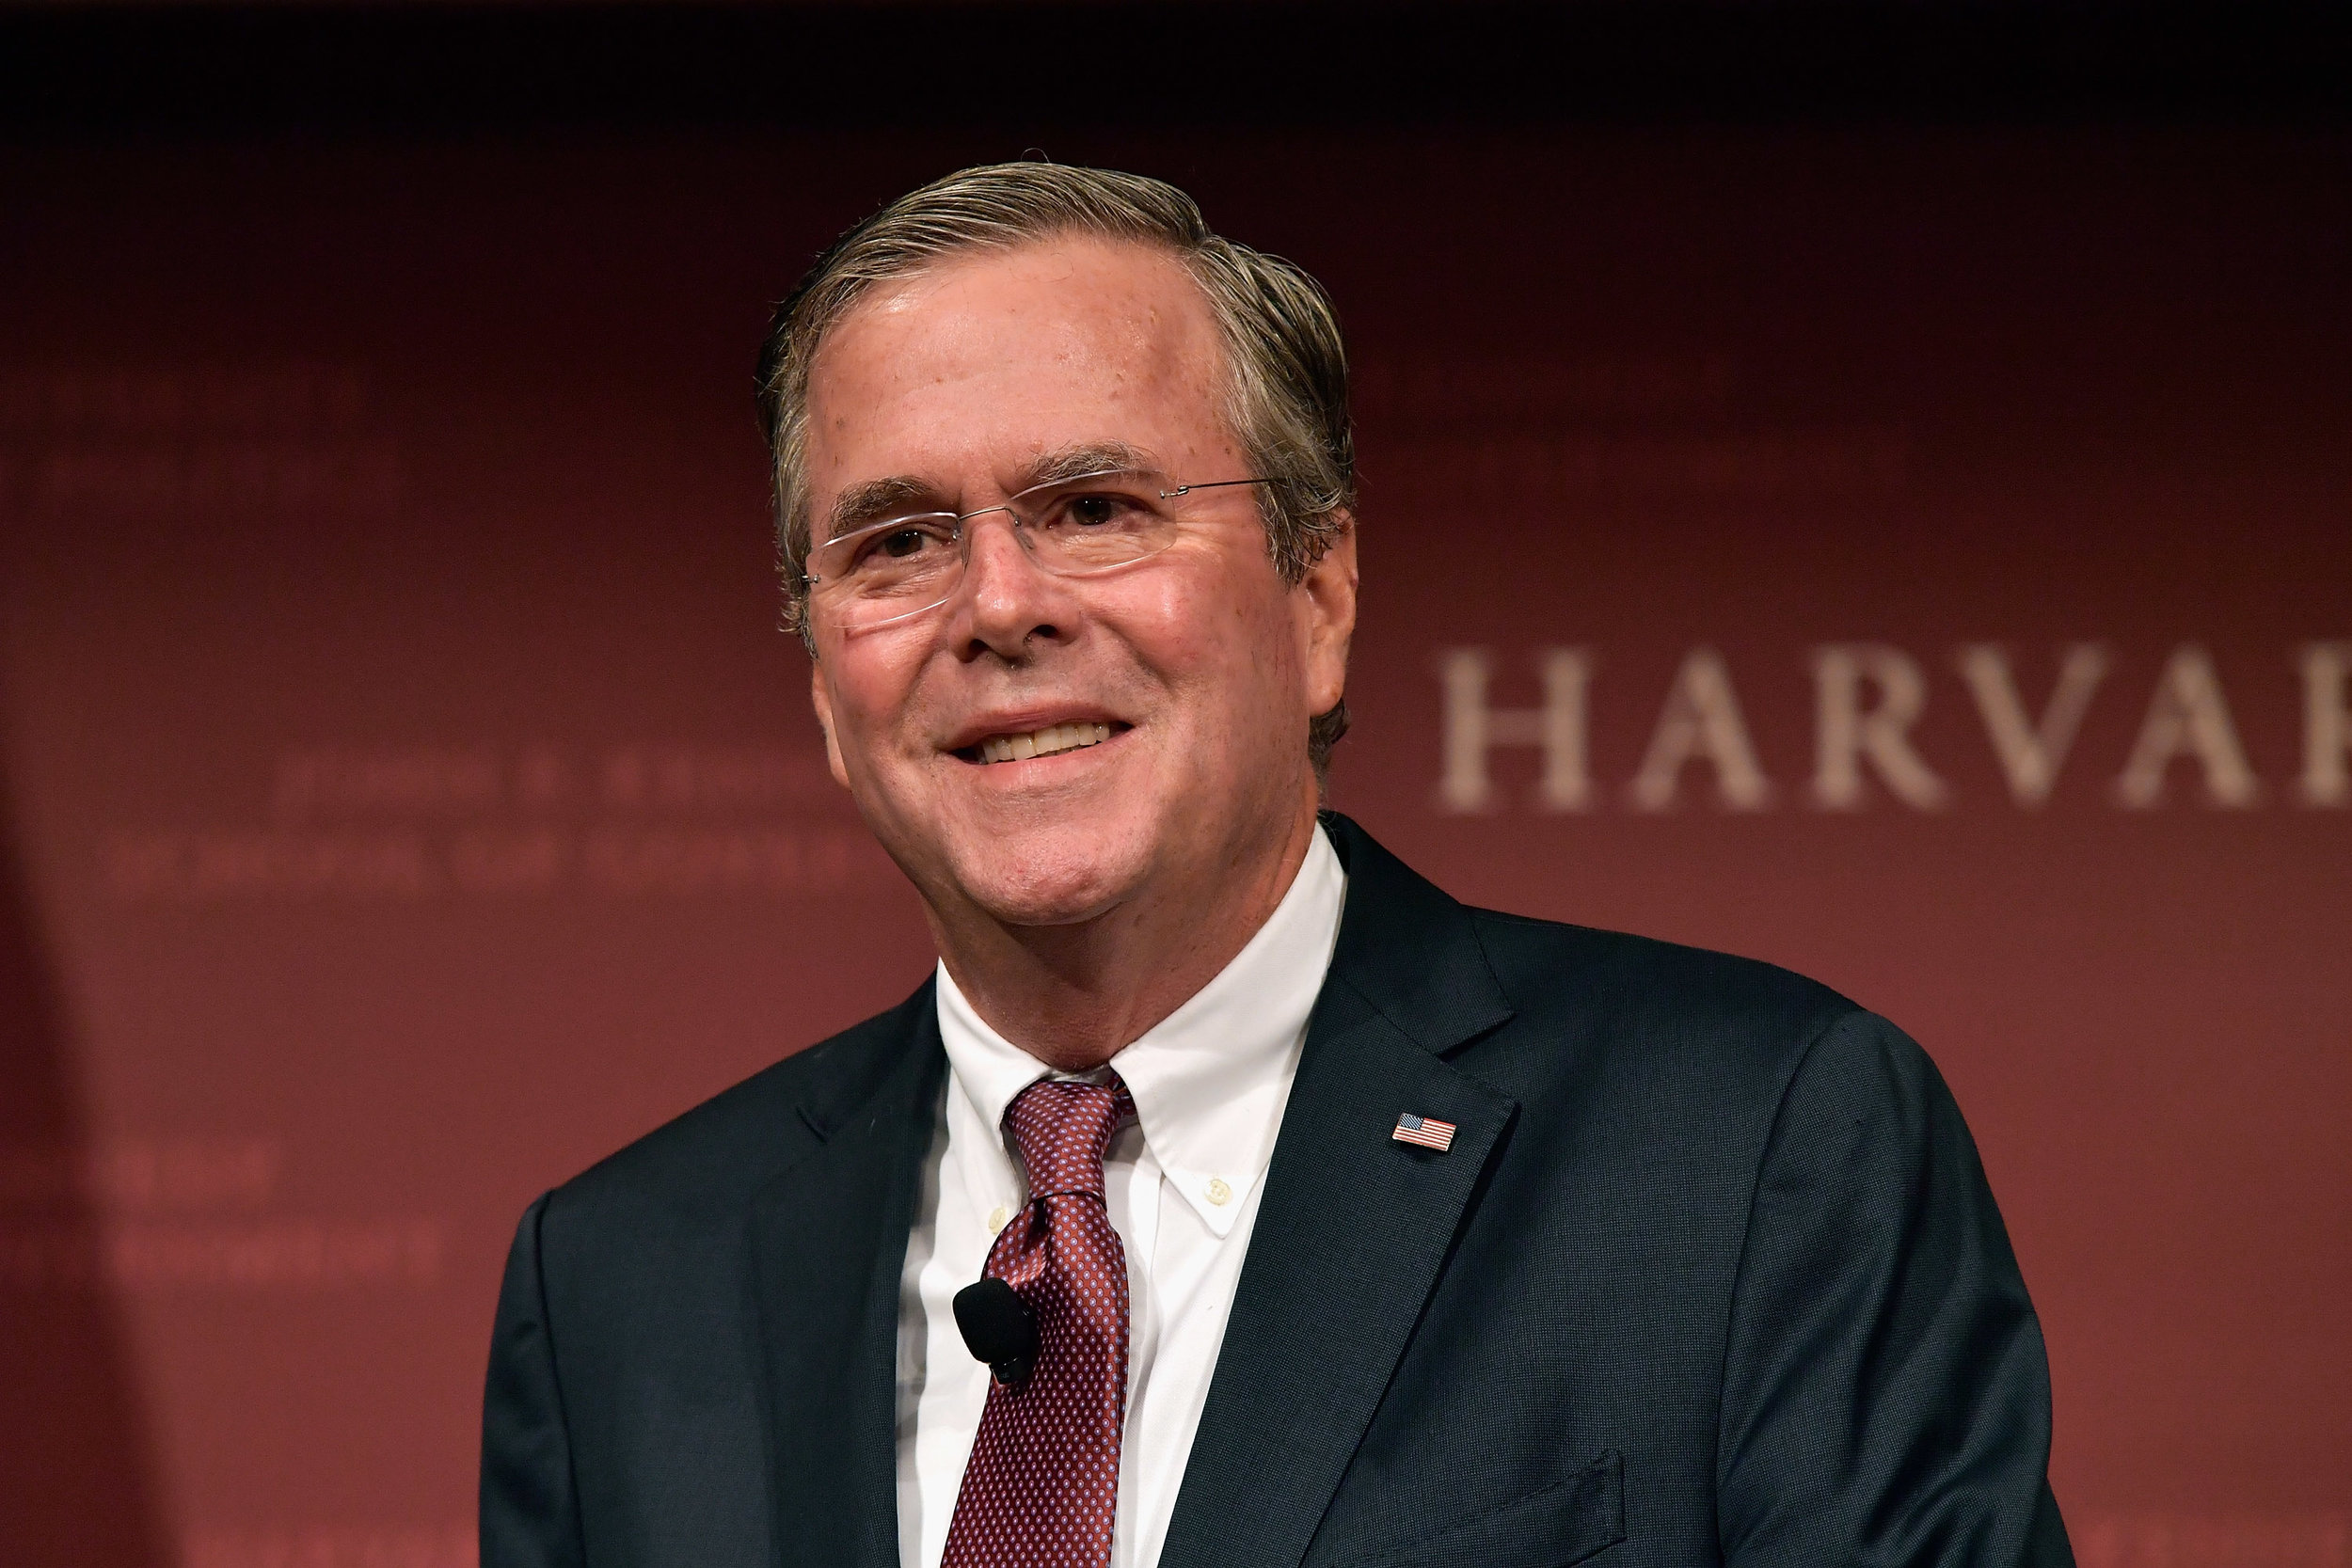 Jeb Bush at Harvard